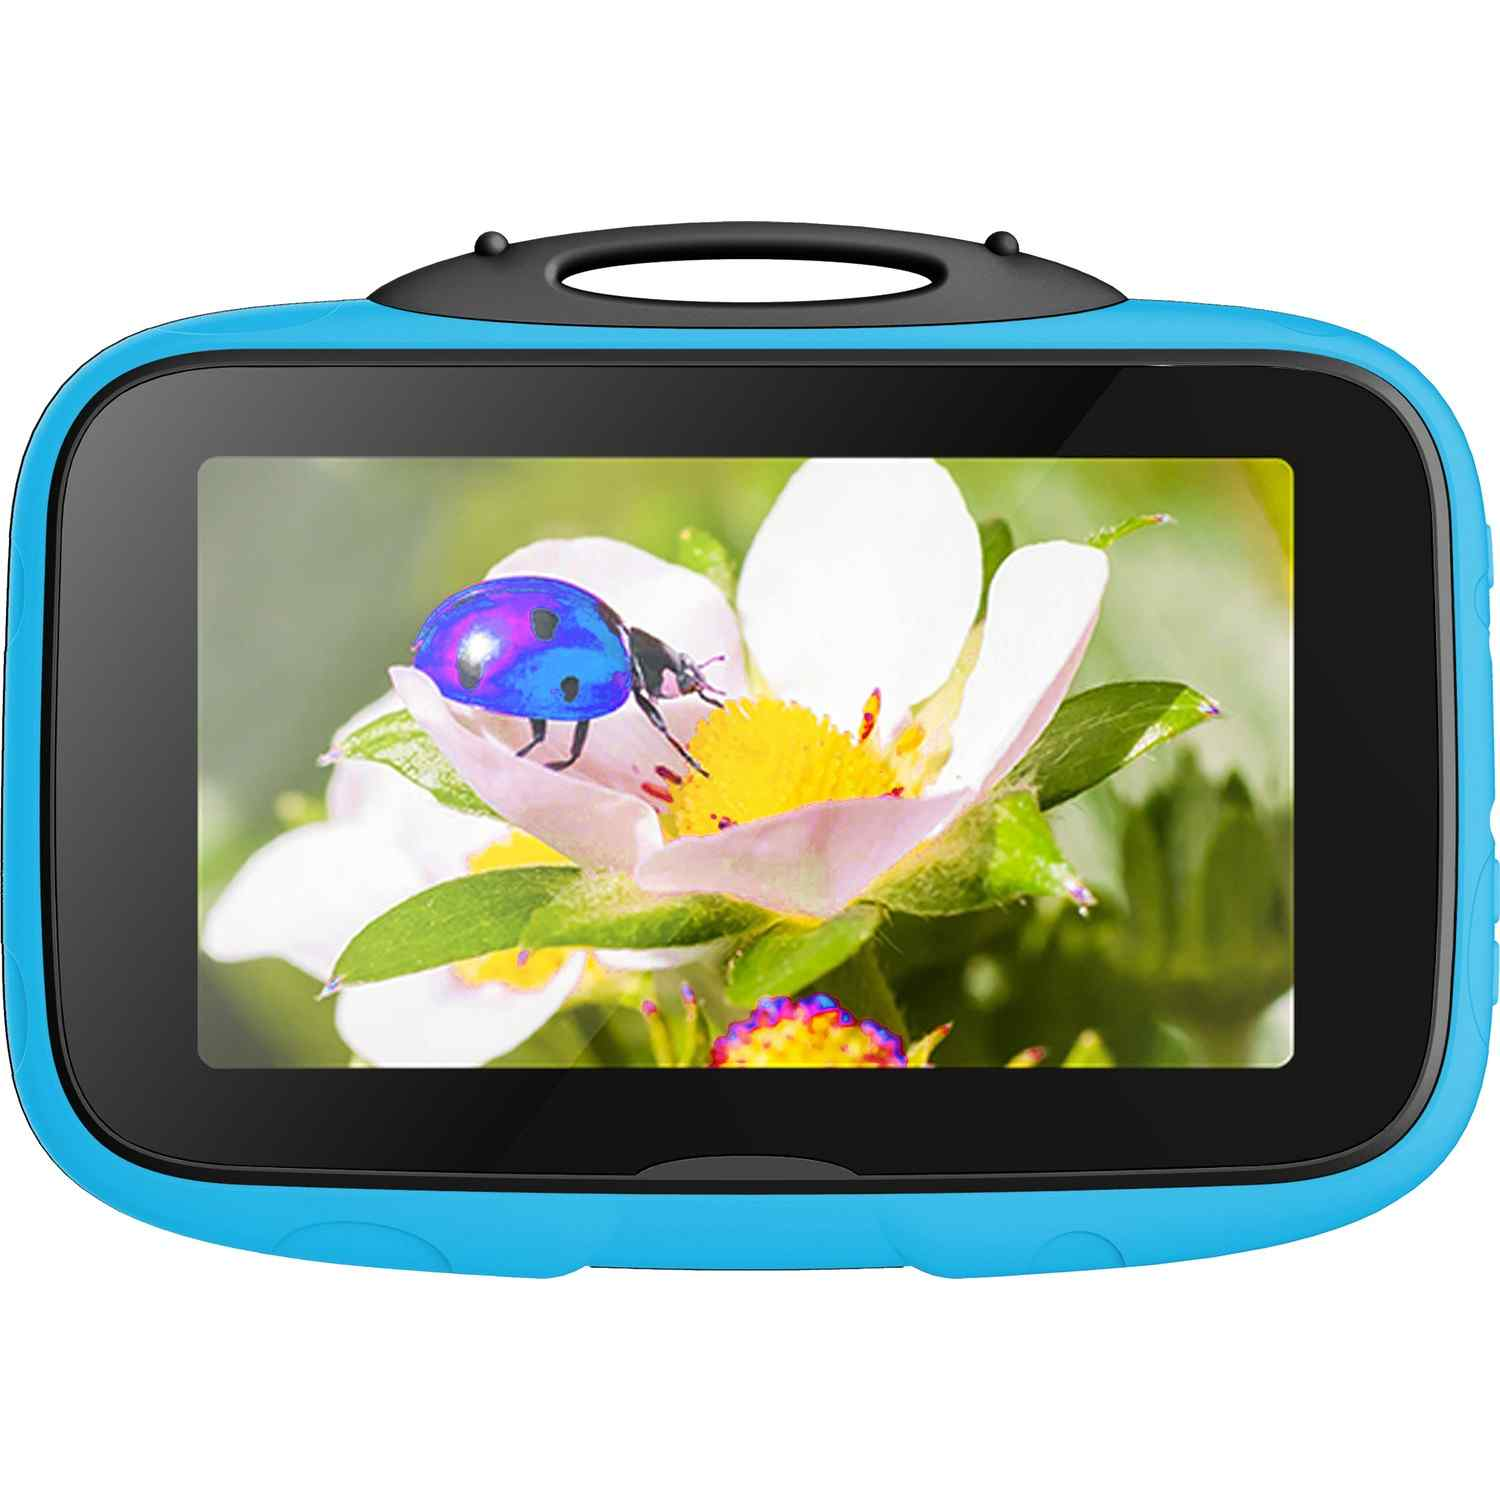 "EVEREST EVERPAD HAPPY KIDS SC-735 1GB 16GB 7"" LCD EKRAN MAVİ ANDROID 8.1 TABLET"